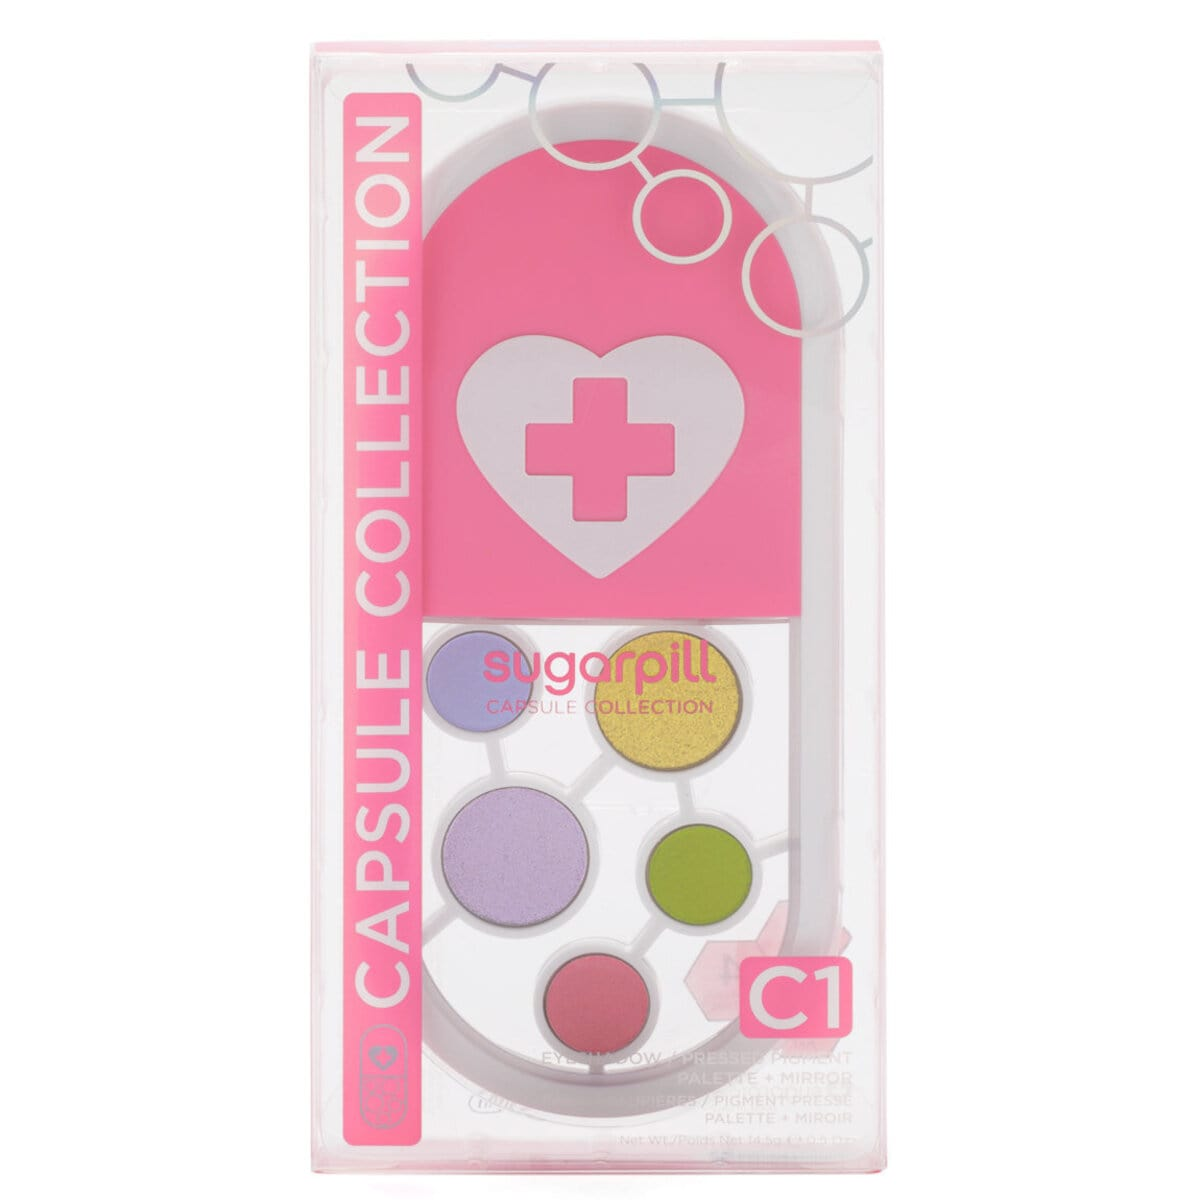 CAPSULE COLLECTION C1 PINK EDITION - SUGARPILL